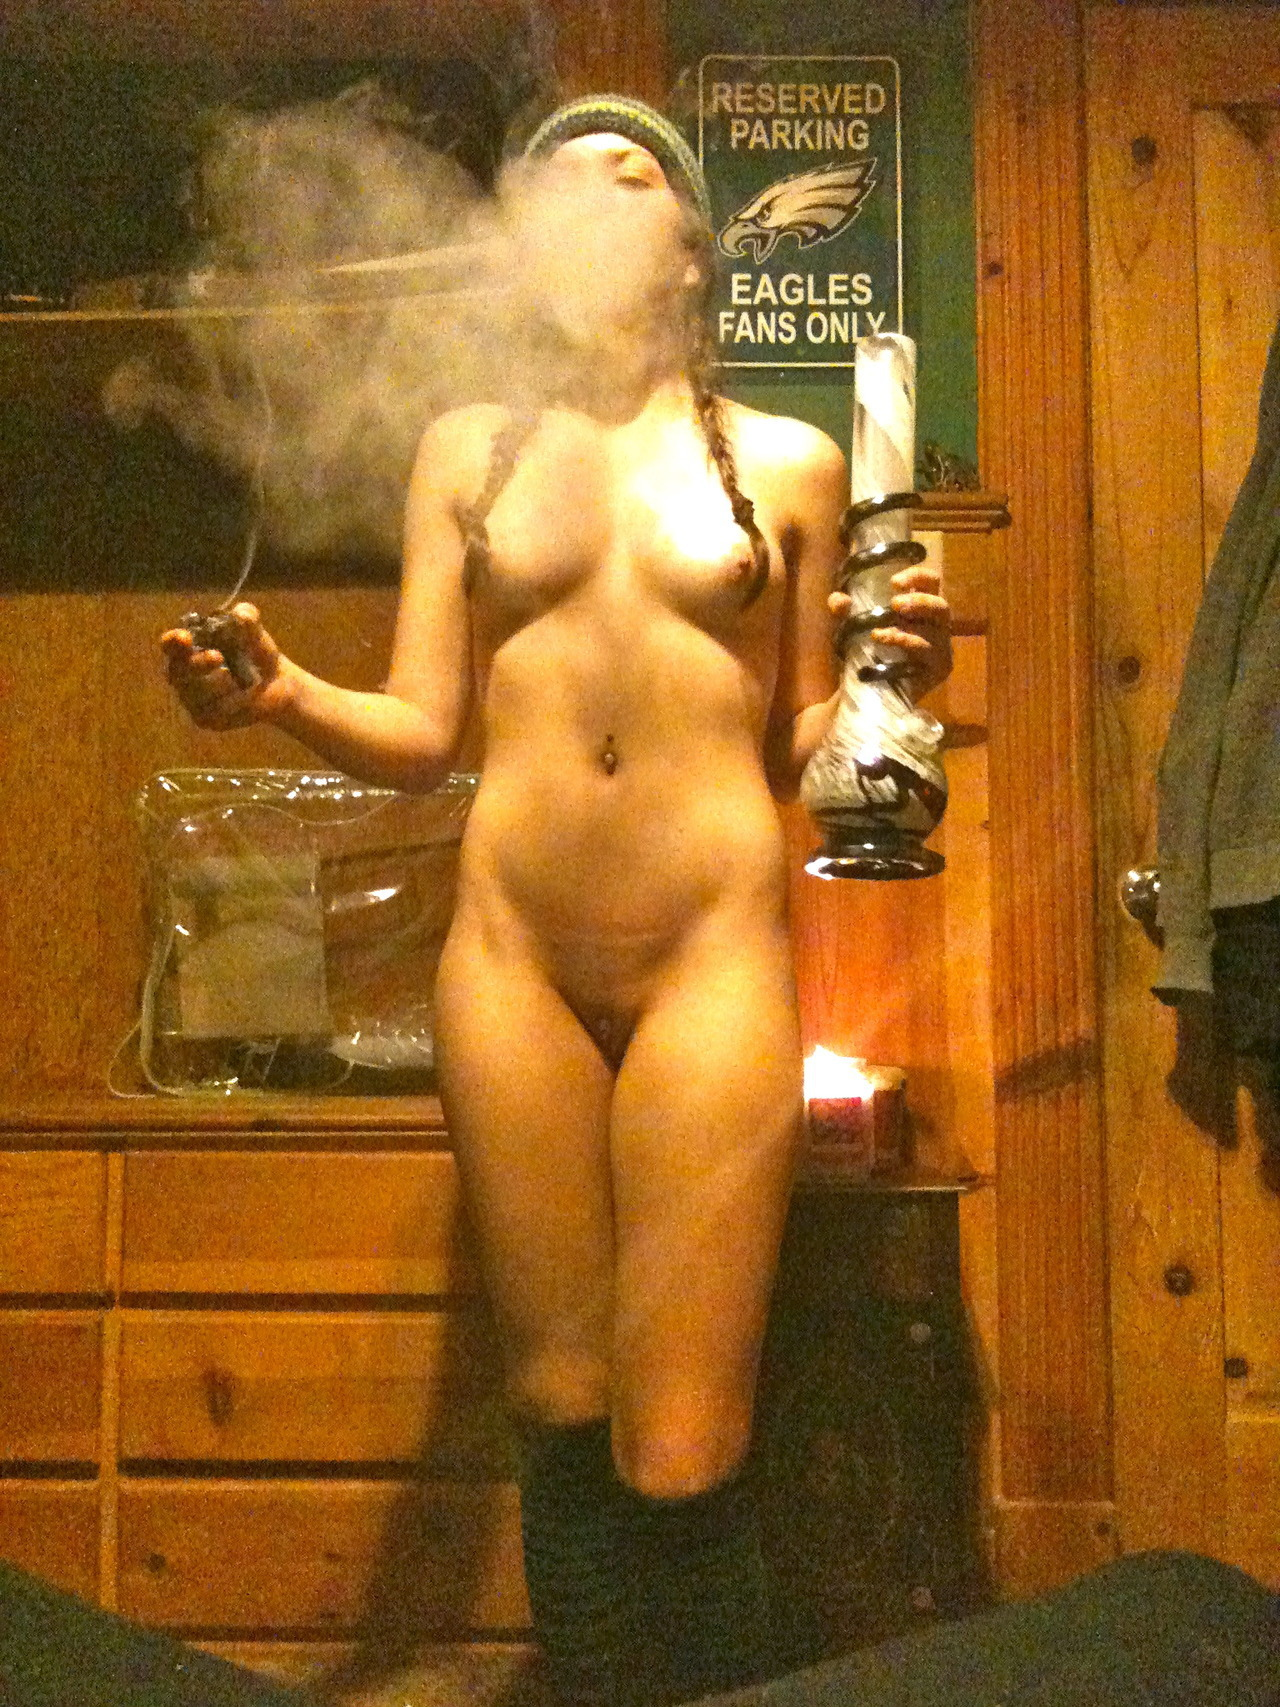 ricki white pussy was crazy gushy free mobile #sexy #stoner #weed #420 #bong #tits #pussy #socks